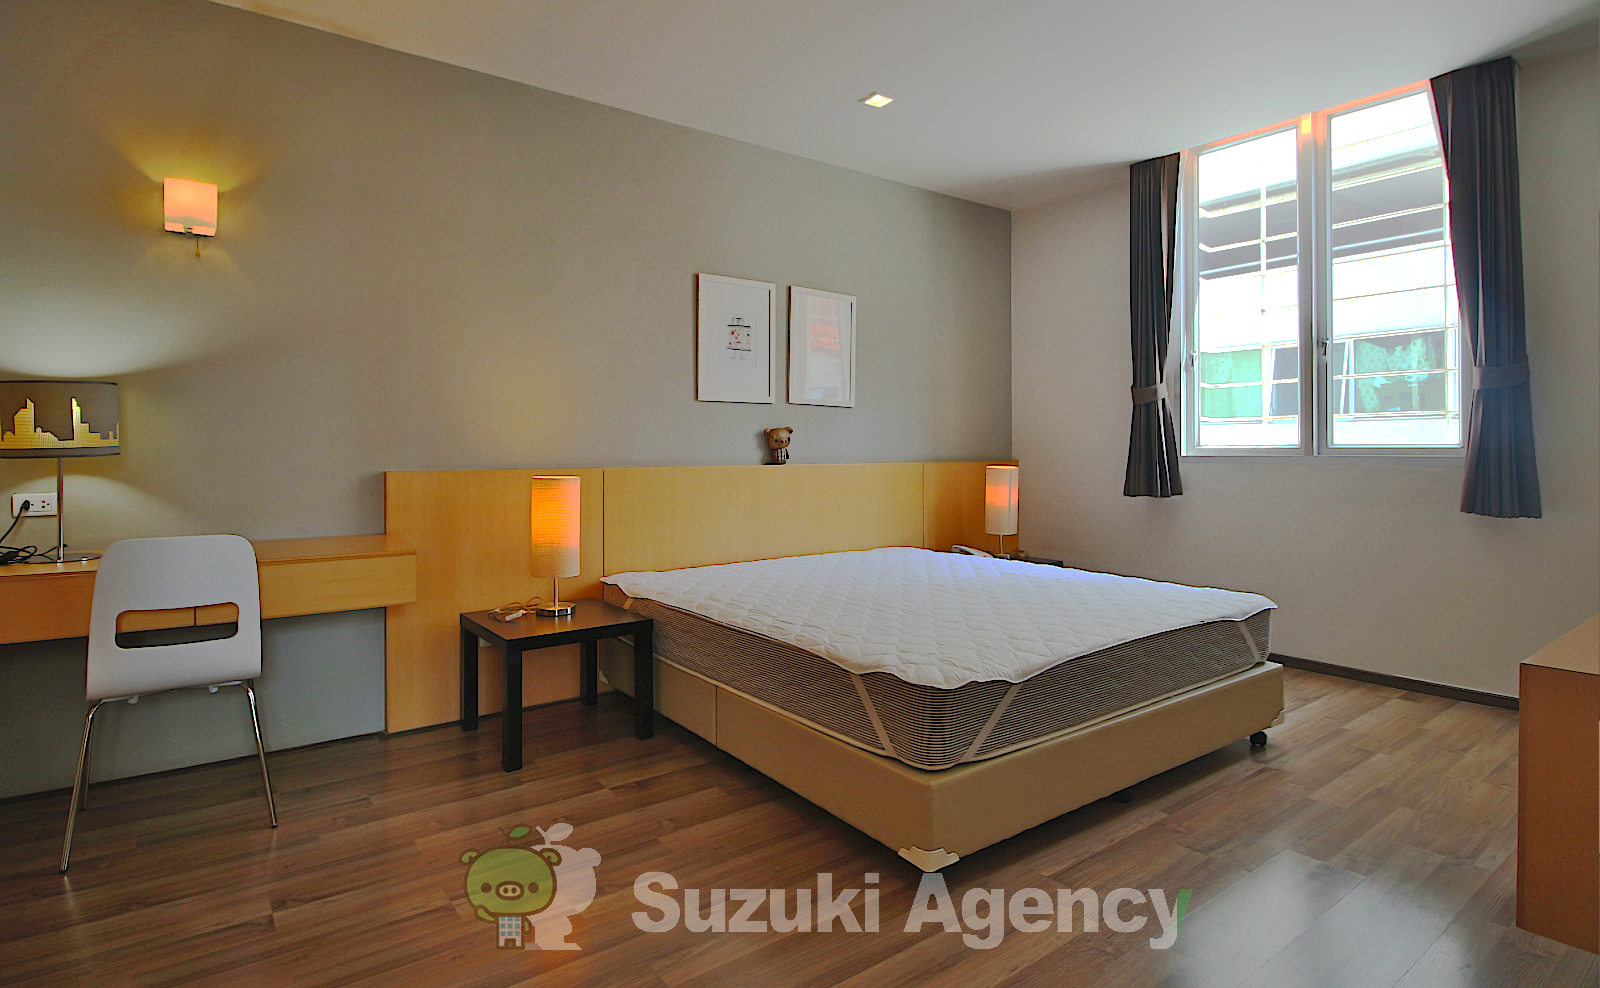 39 Residence:1Bed Room Photos No.7